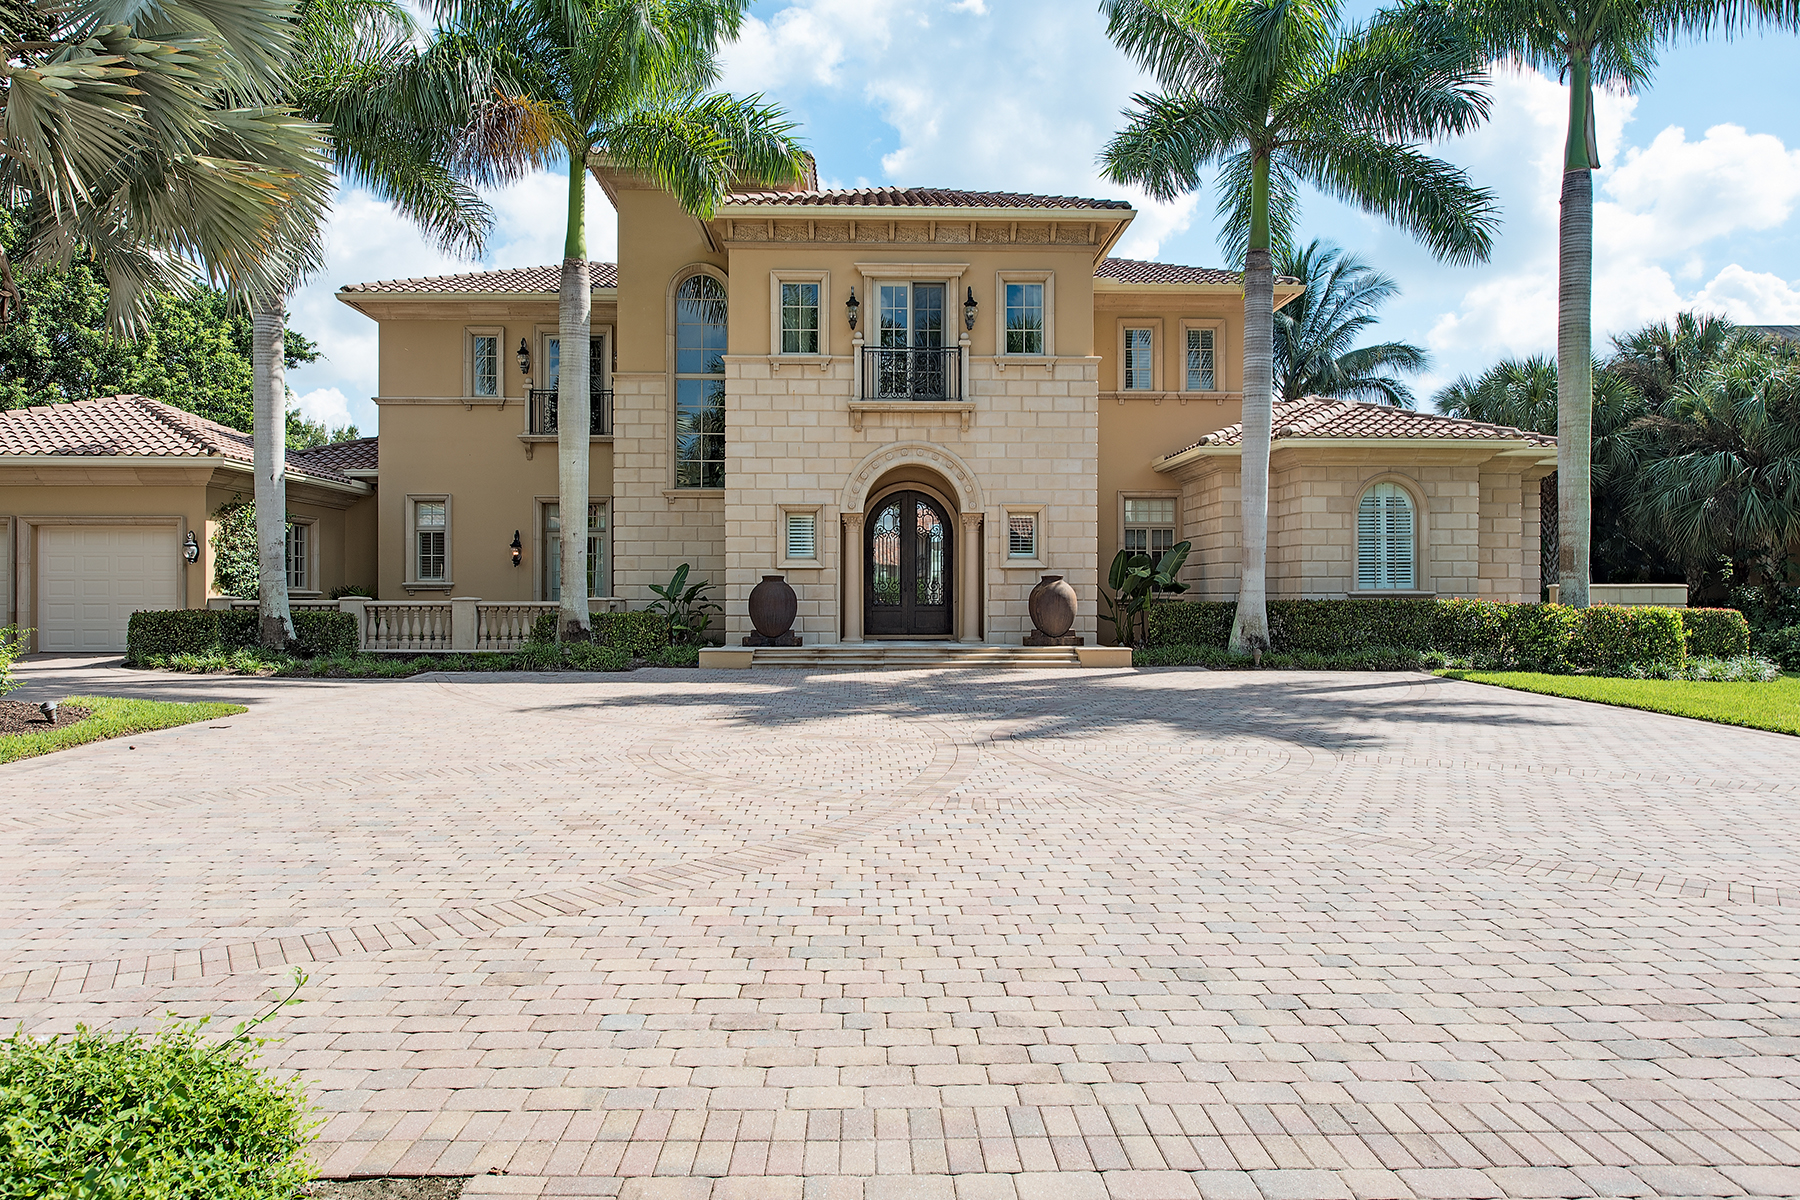 Single Family Home for Sale at 2824 Silverleaf Ln , Naples, FL 34105 2824 Silverleaf Ln Naples, Florida, 34105 United States